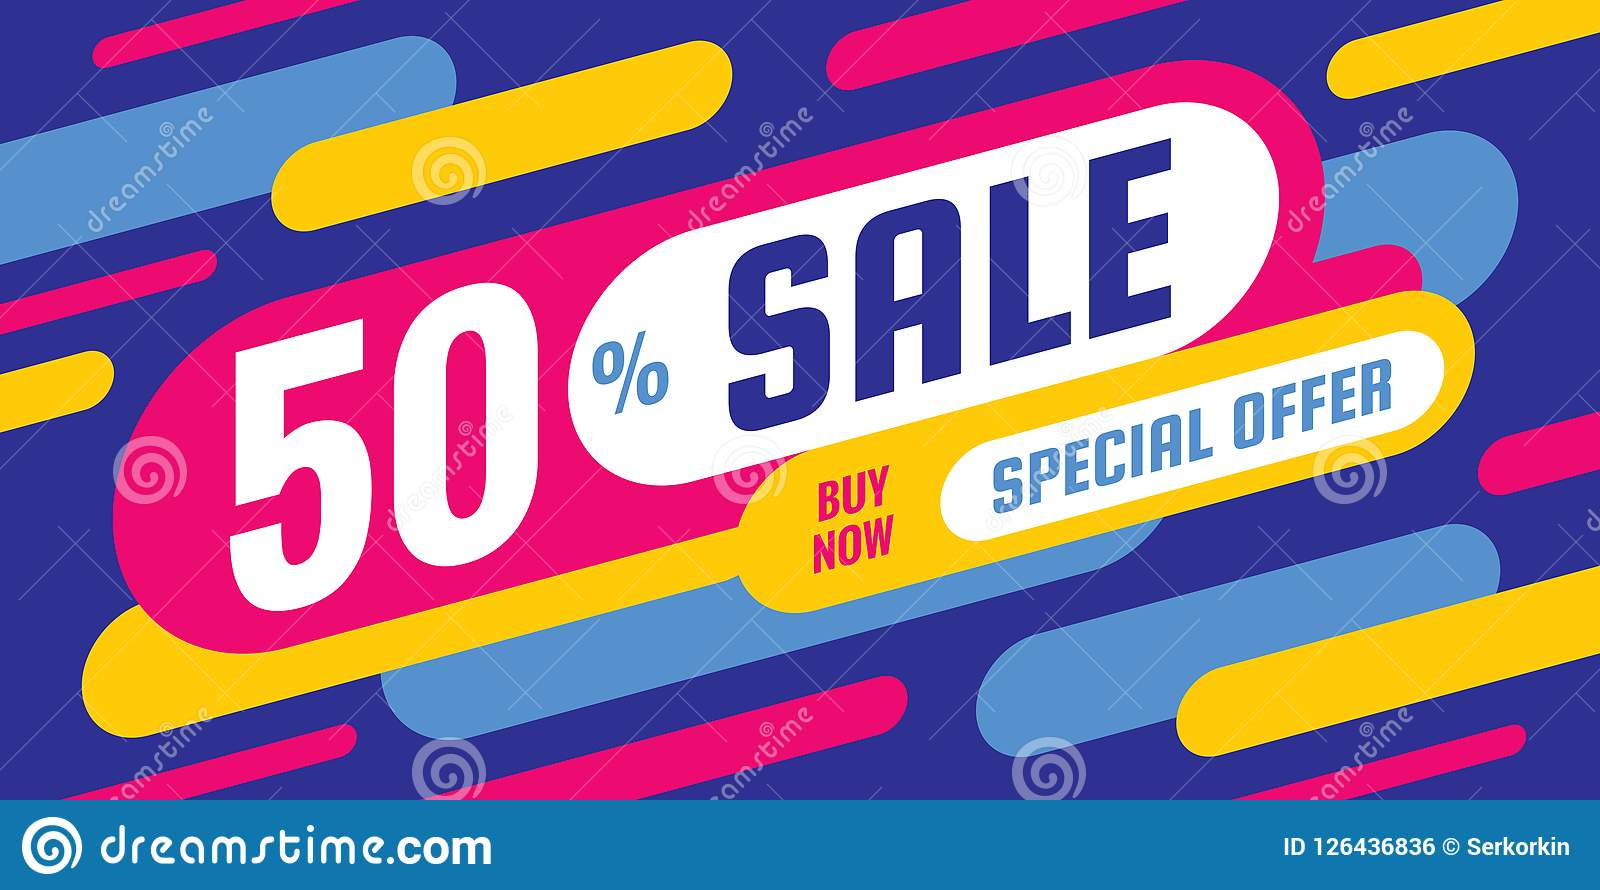 Sale discount up to 50  off - concept horizontal banner vector illustration. Special offer abstract layout. Graphic design poster.